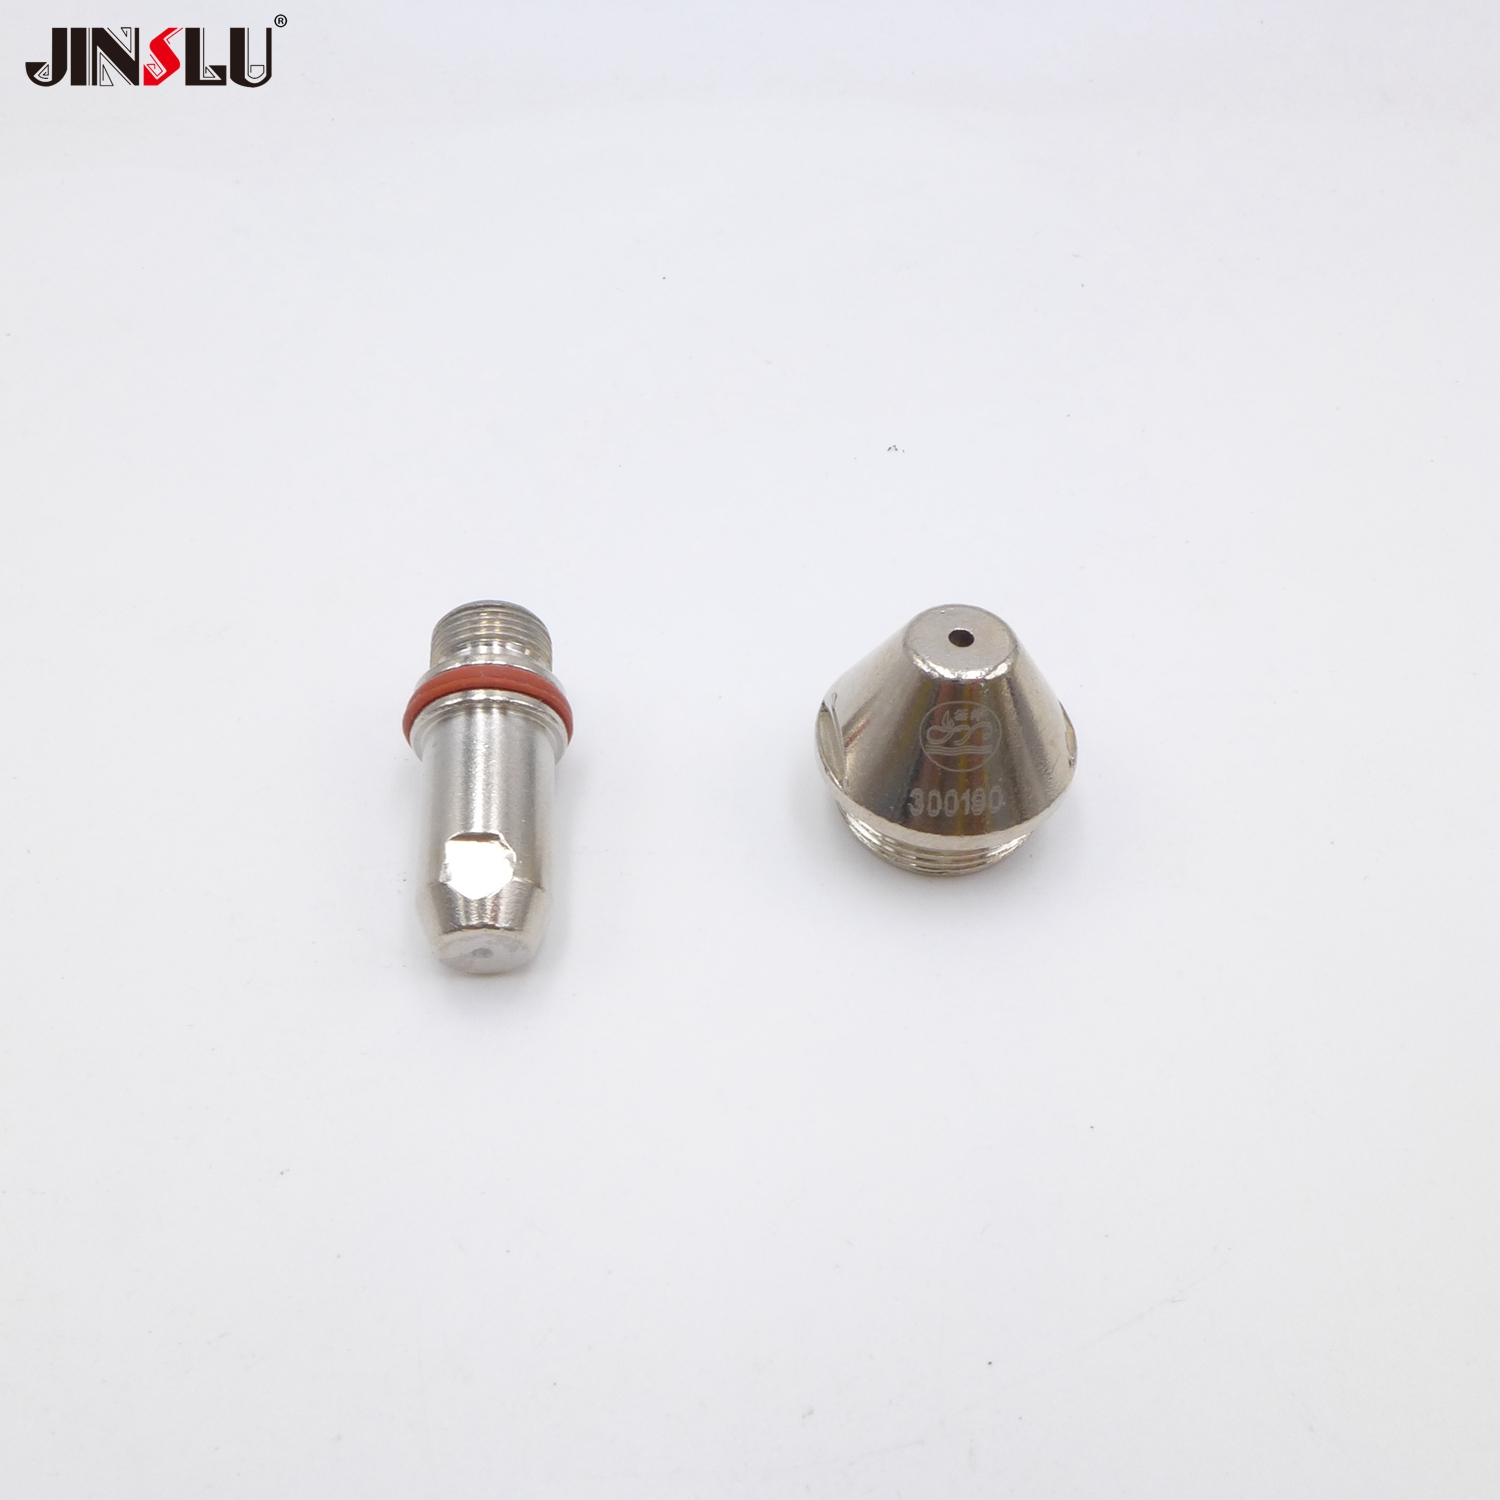 Electrode 300100 10pcs & Nozzle 10PCS (1.5/1.7/1.9/2.1/2.5mm) FOR FY-XF300H FY-XF300 XF-300 Straight Plasma Cutting Machine Gun